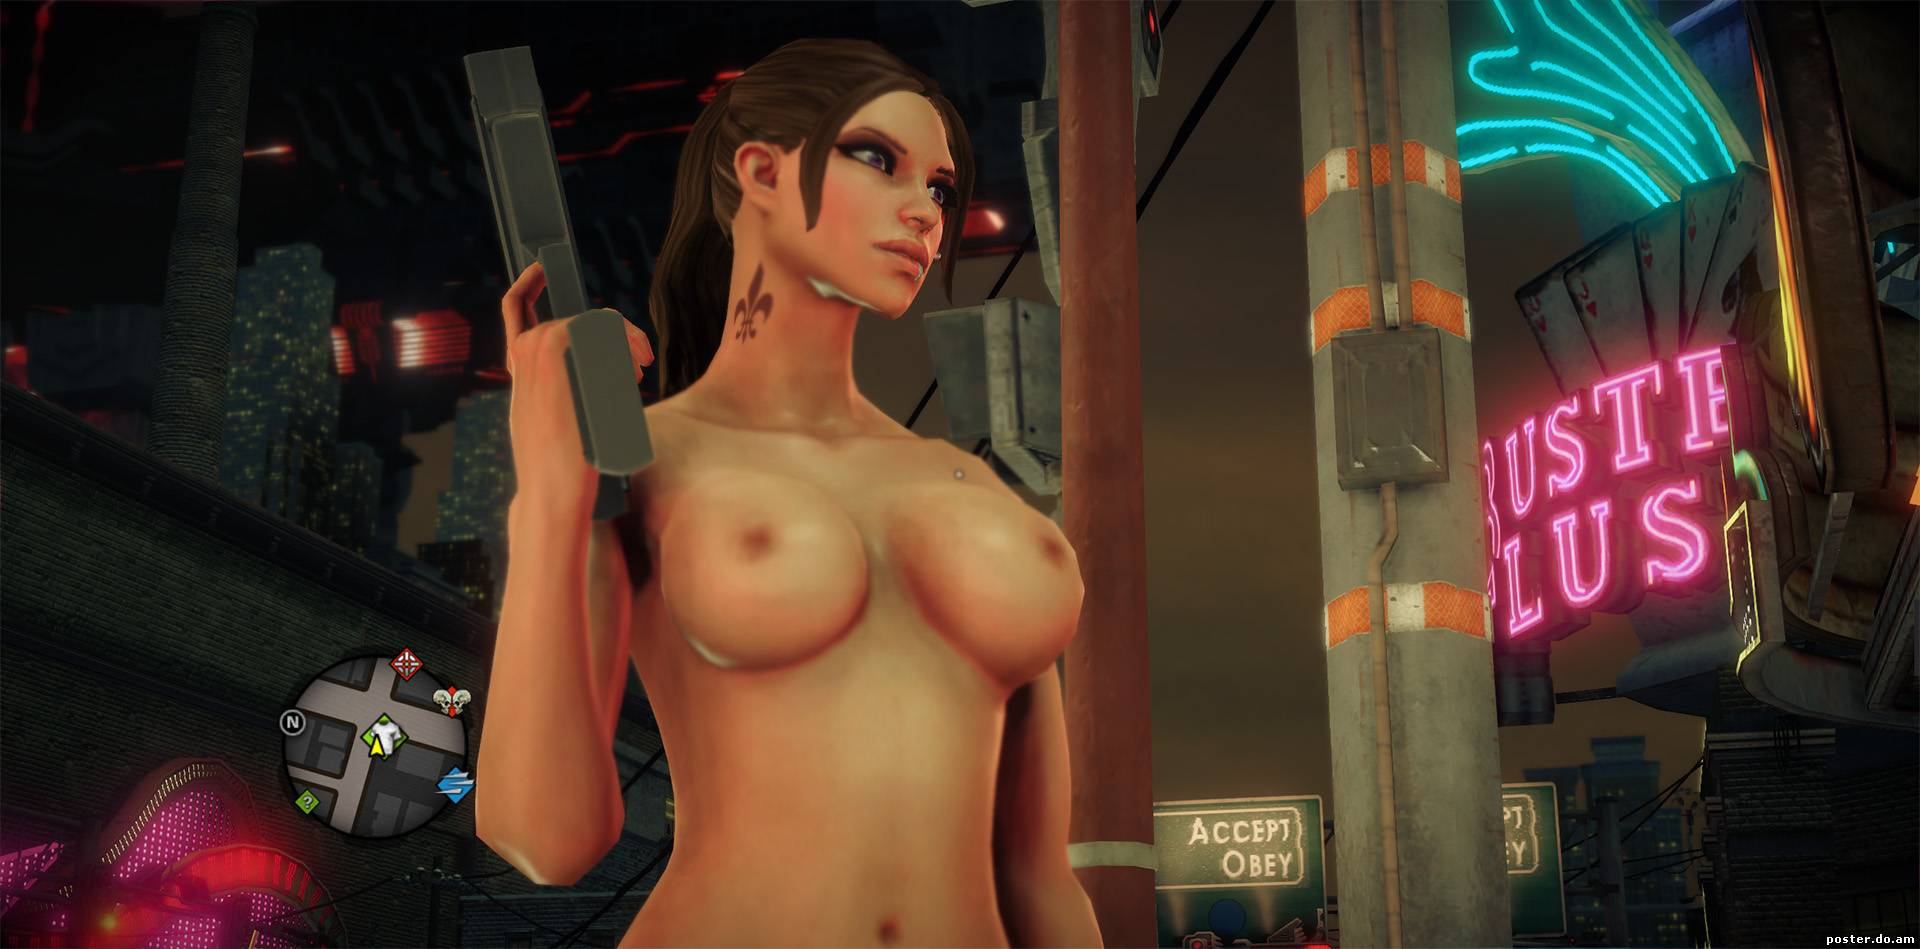 Saints row nude strippers sexy download